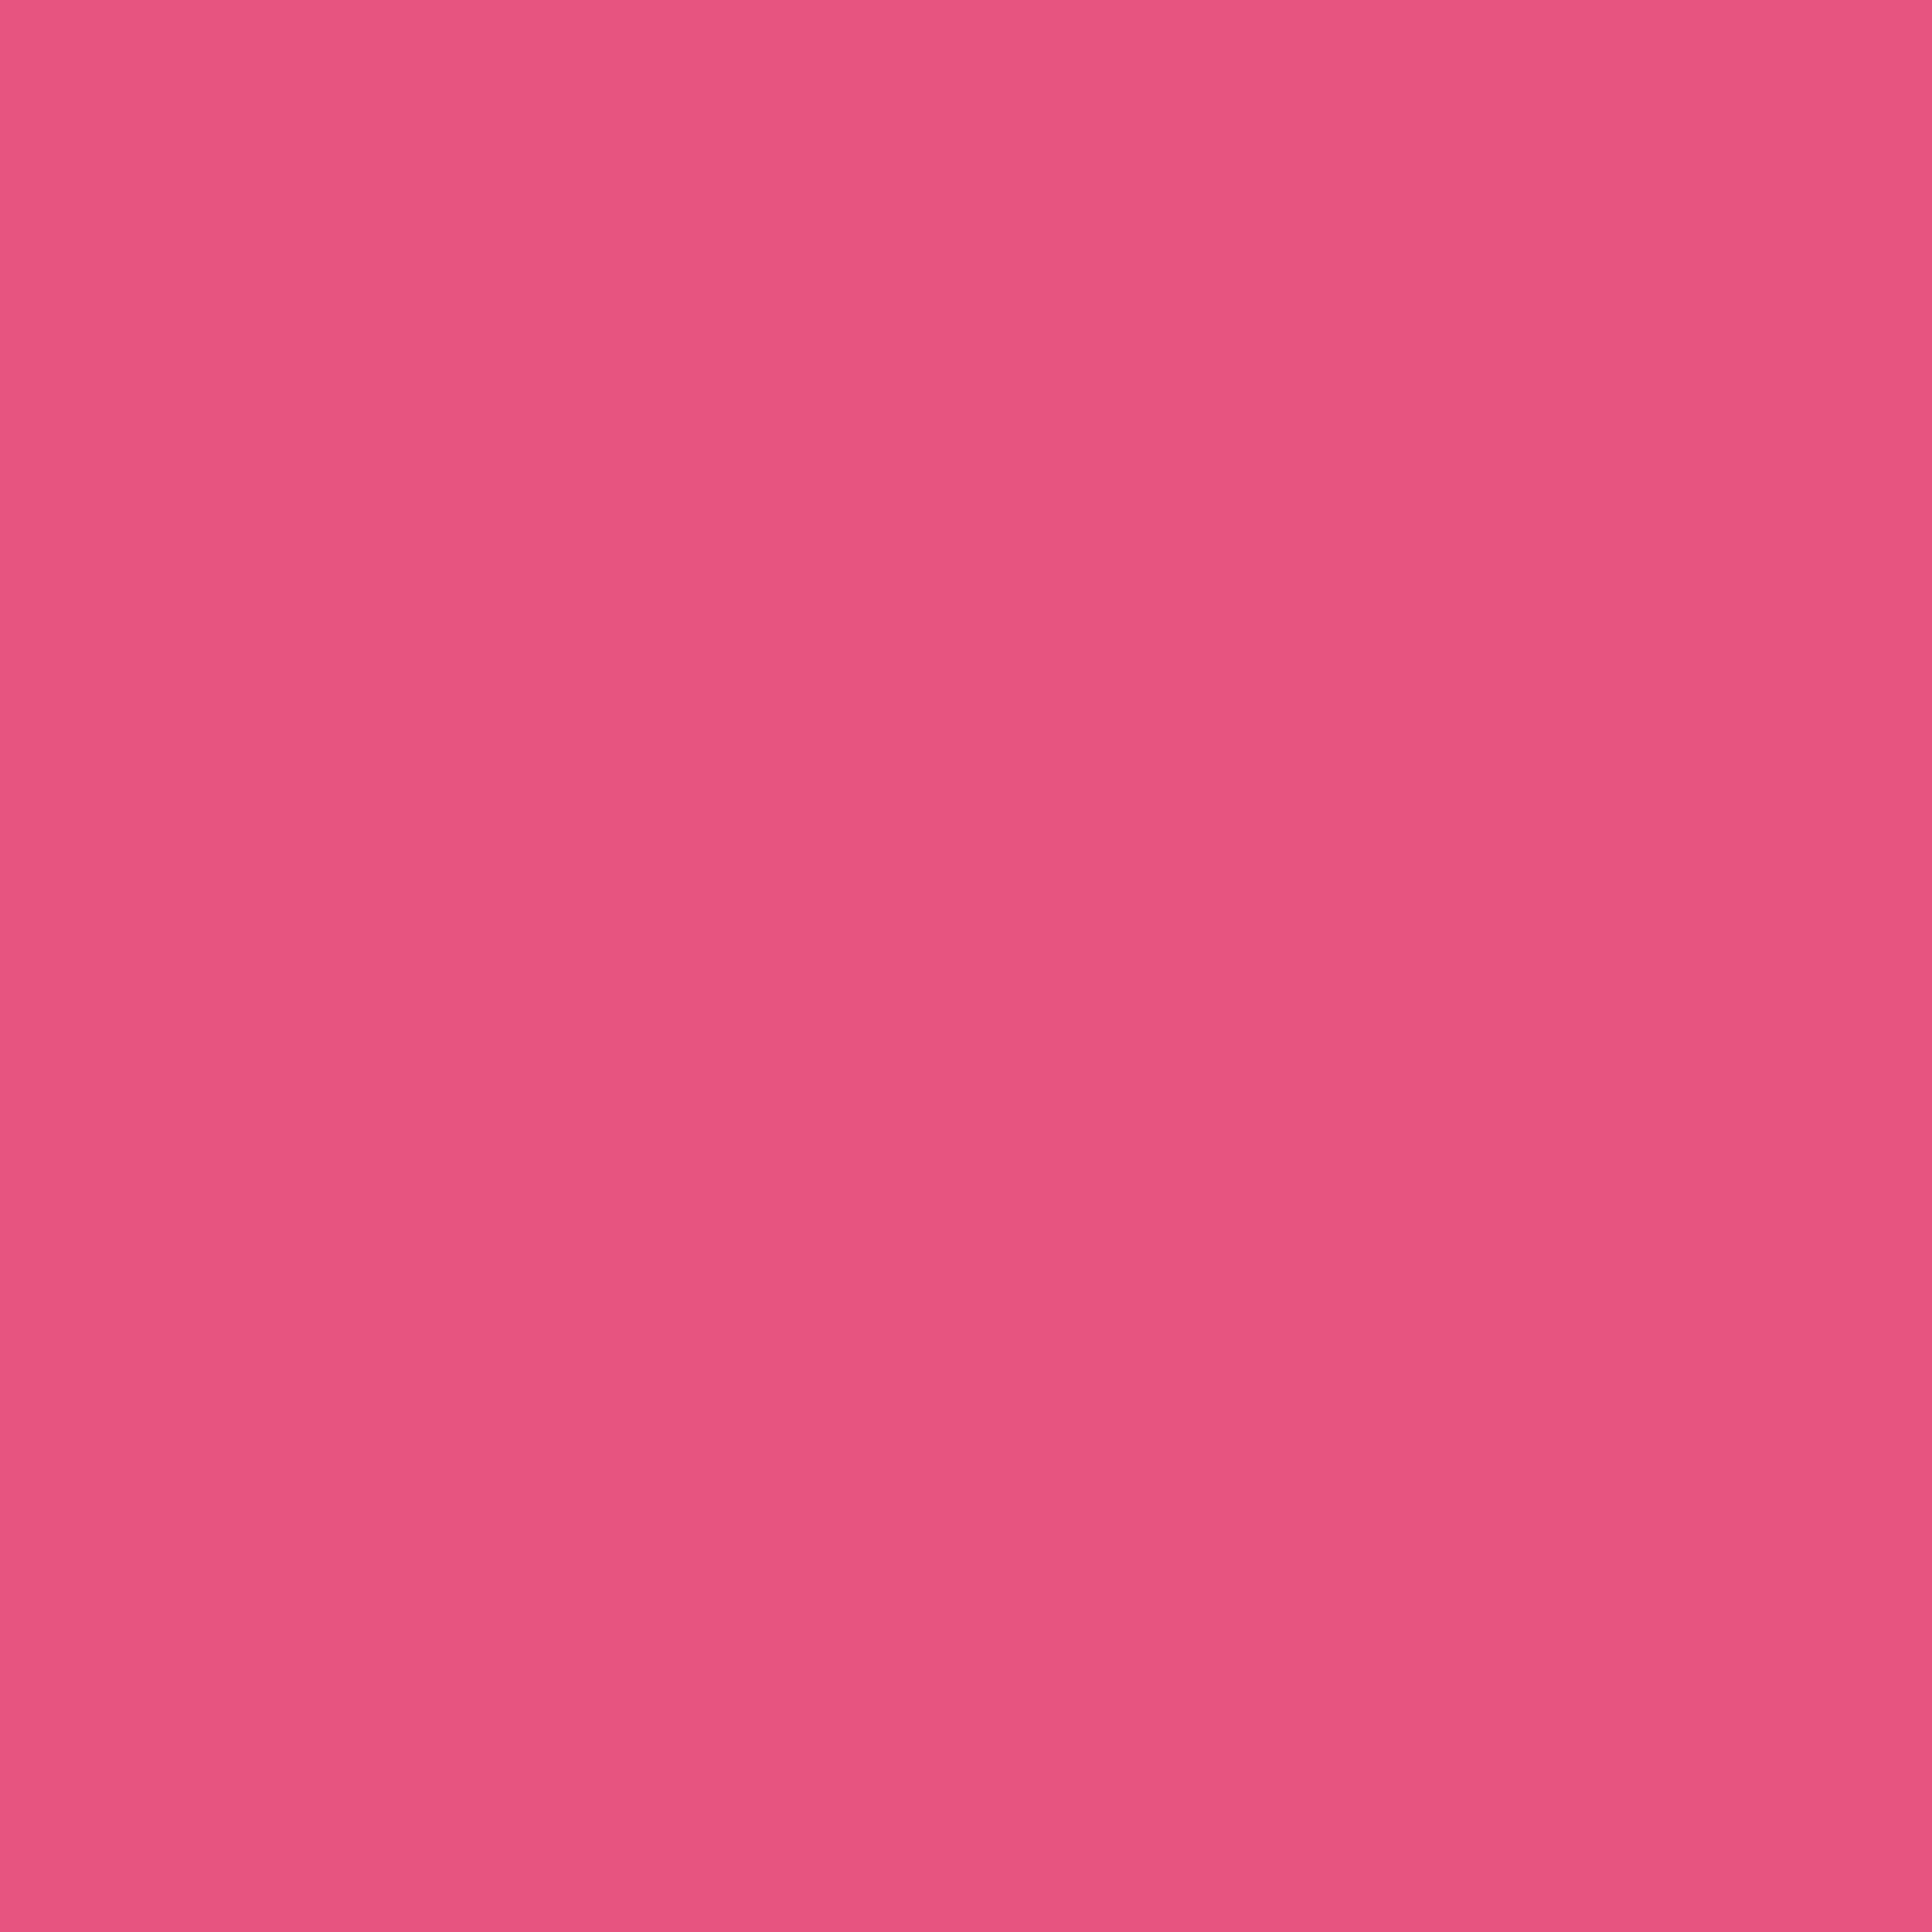 2048x2048 dark pink solid color background